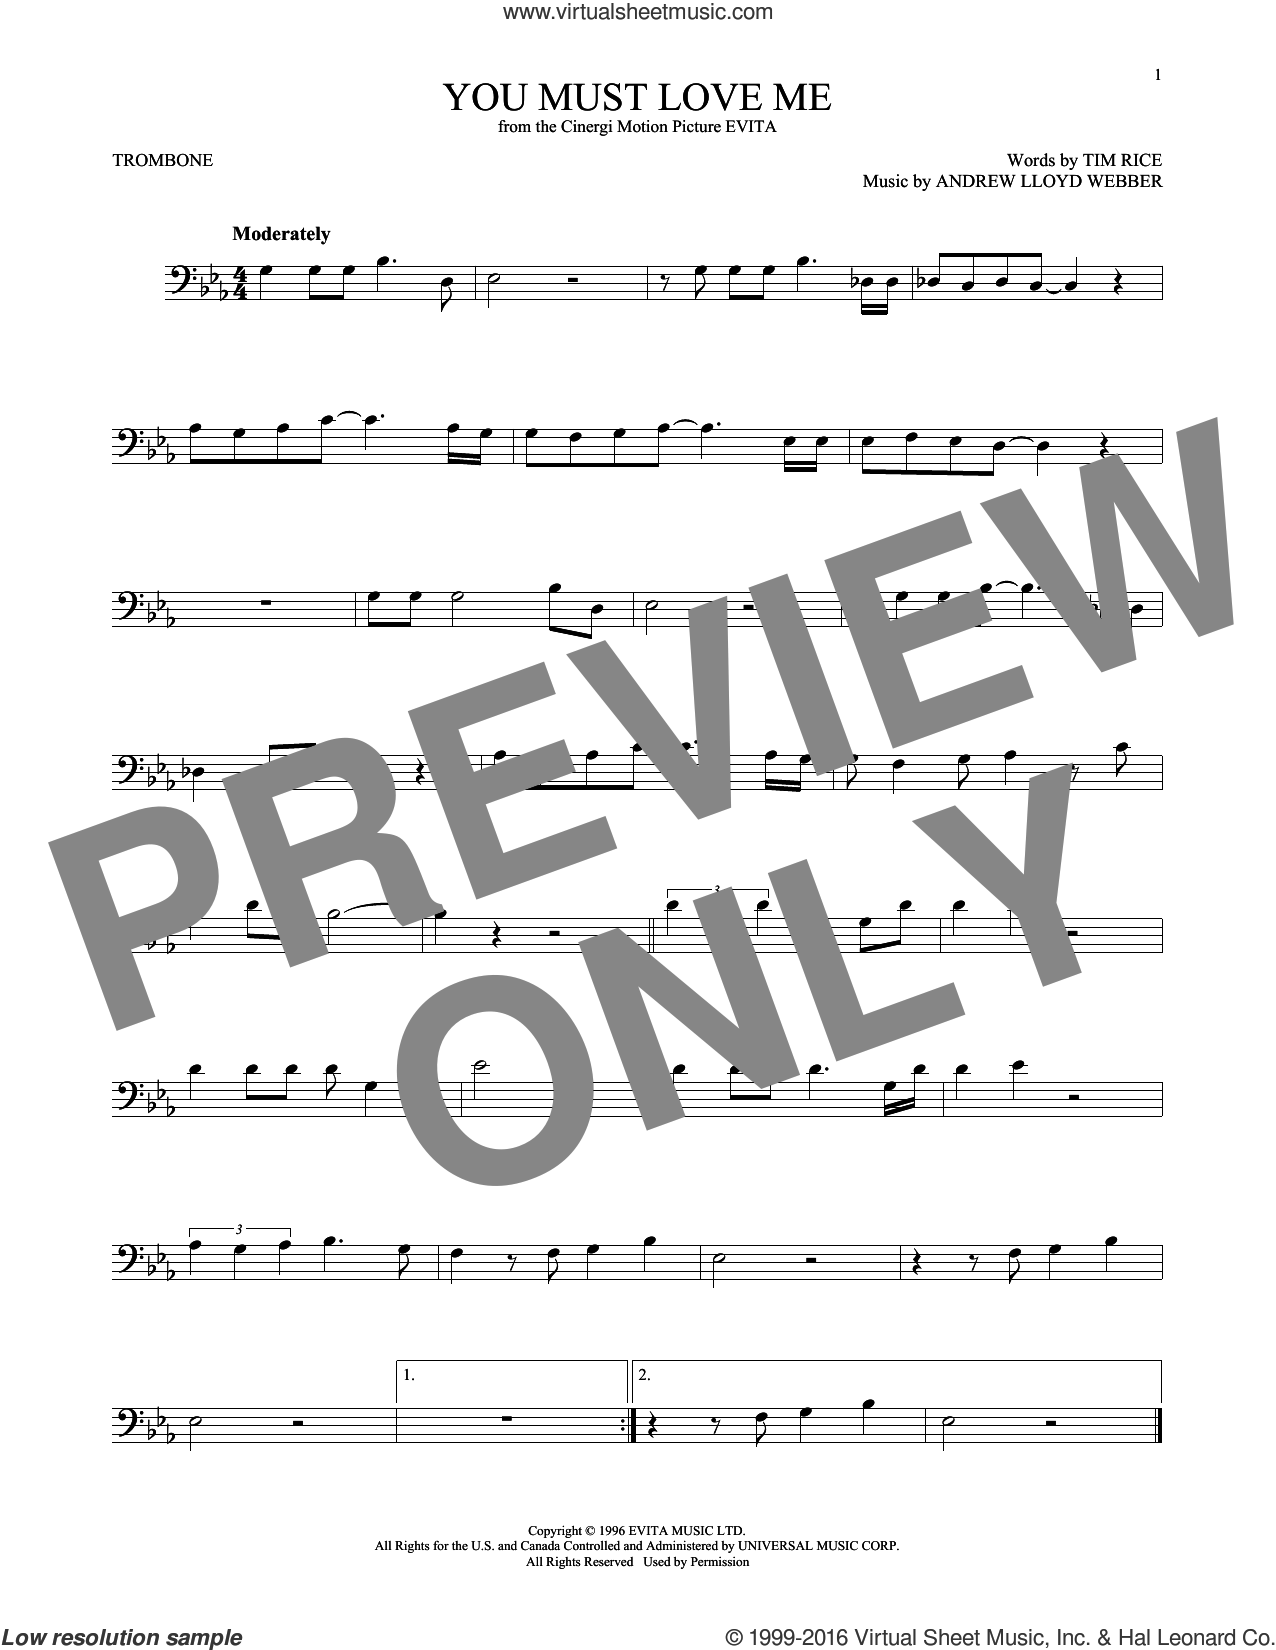 You Must Love Me (from Evita) sheet music for trombone solo by Andrew Lloyd Webber, Madonna and Tim Rice, intermediate skill level